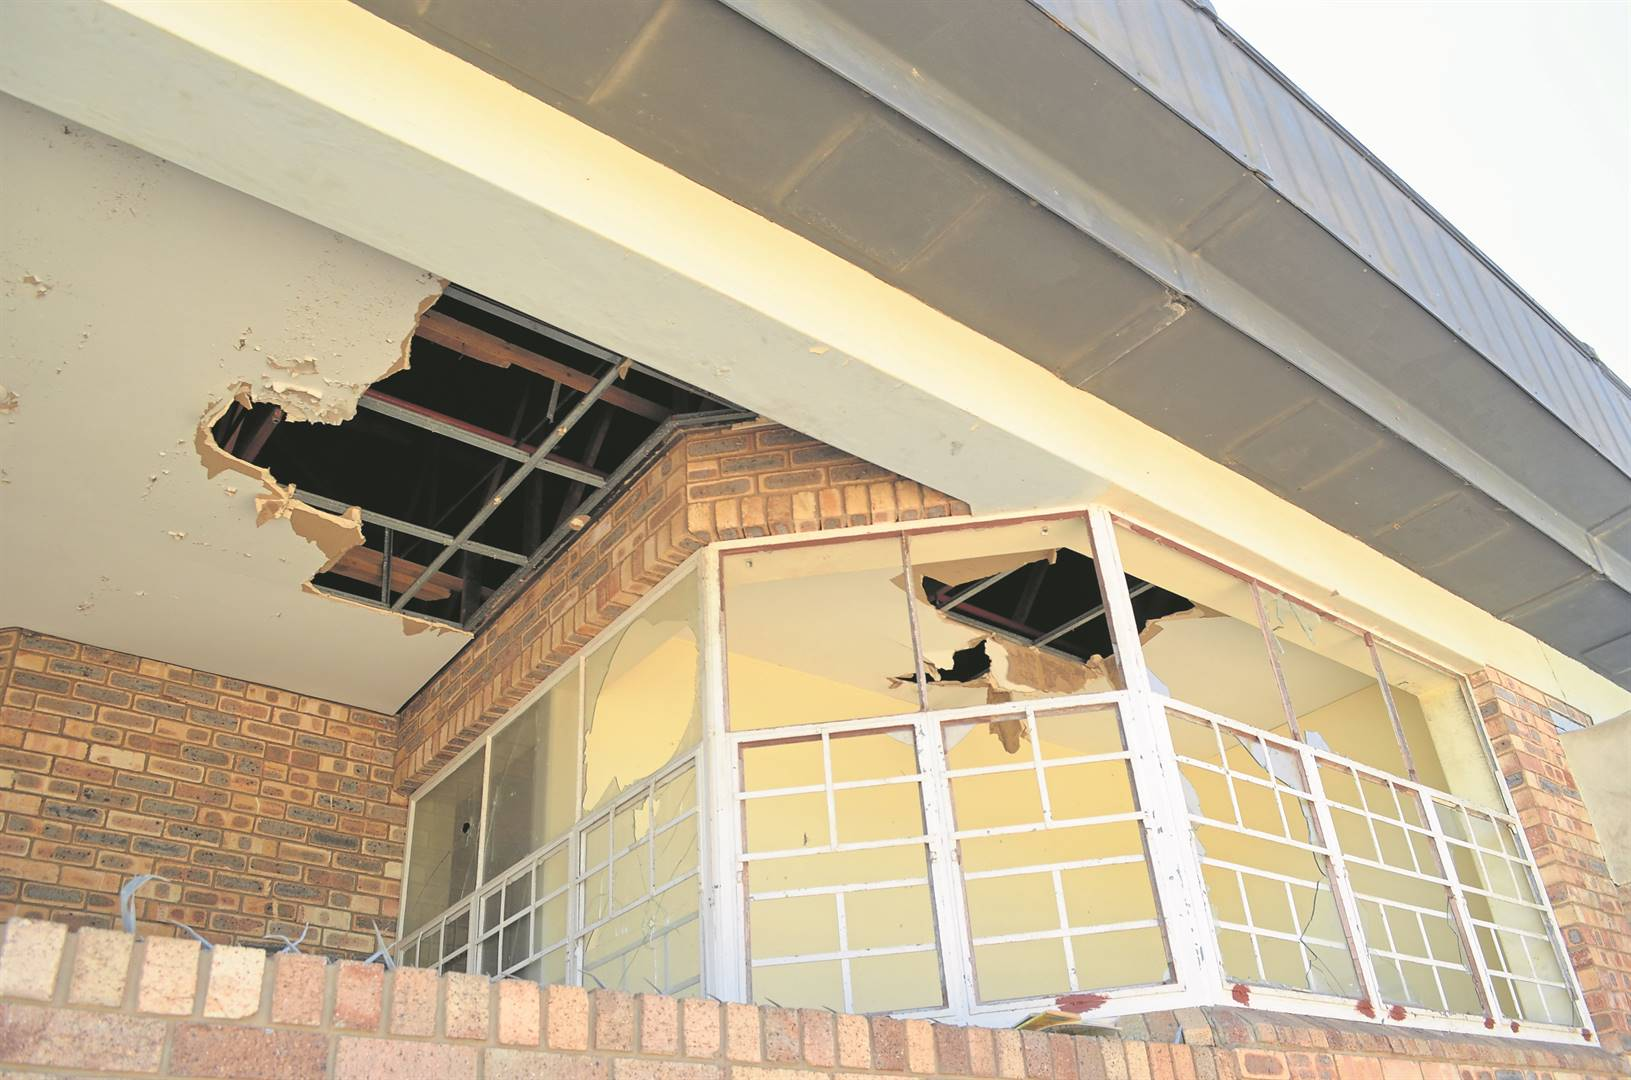 The Allanridge Civic Centre is continuously targeted by vandals. Windows are broken, ceilings torn out, the library is destroyed and all toilets and wash basins are ruined. Photos:HEILIE COMBRINCK